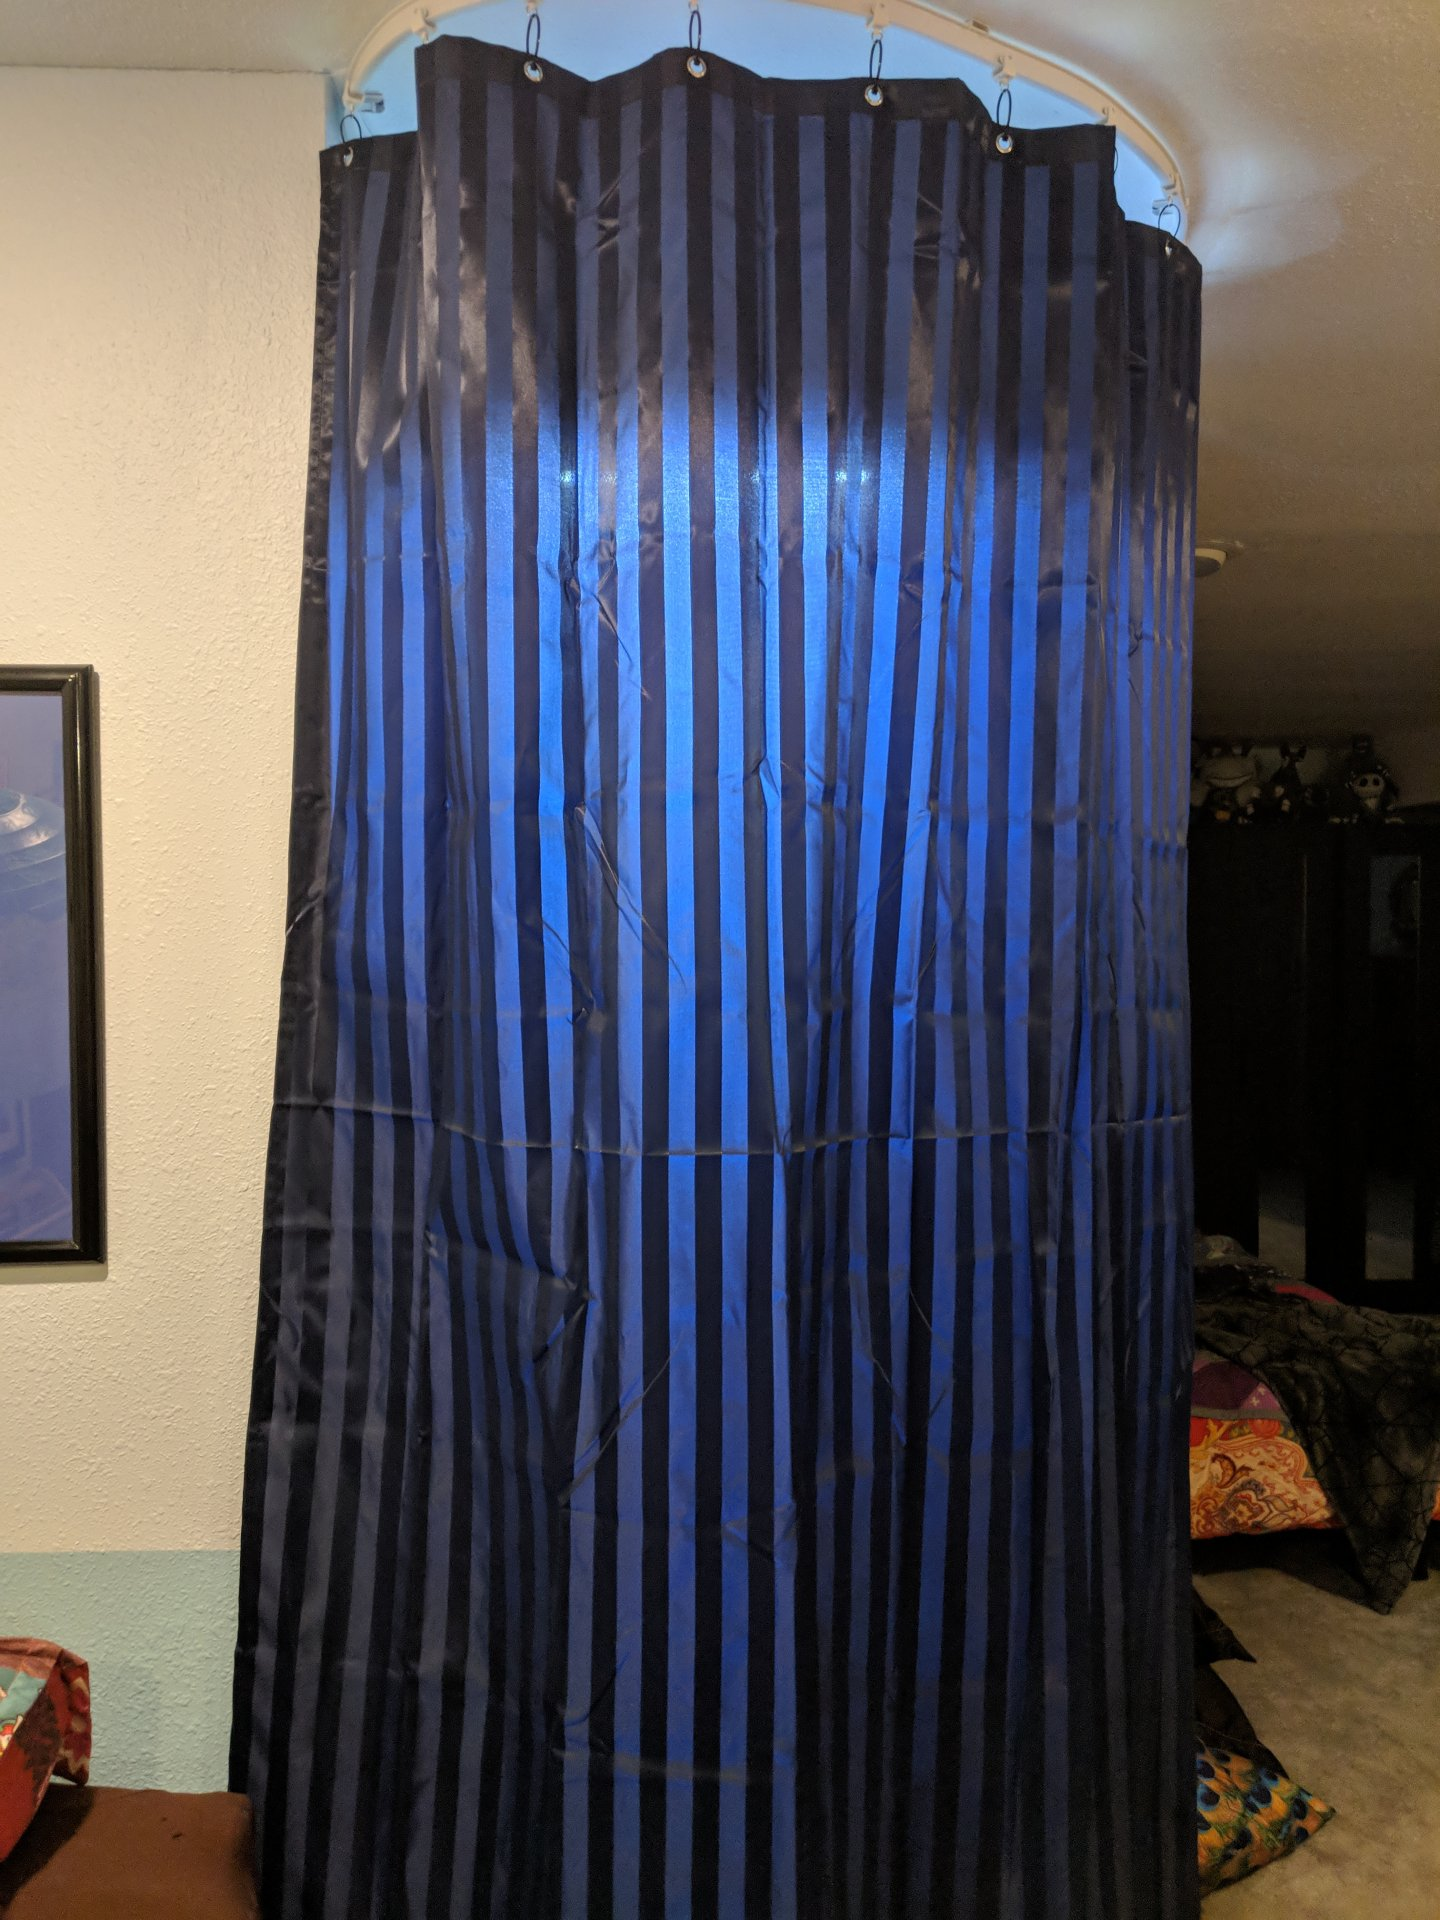 Enclosure with Curtain Drawn